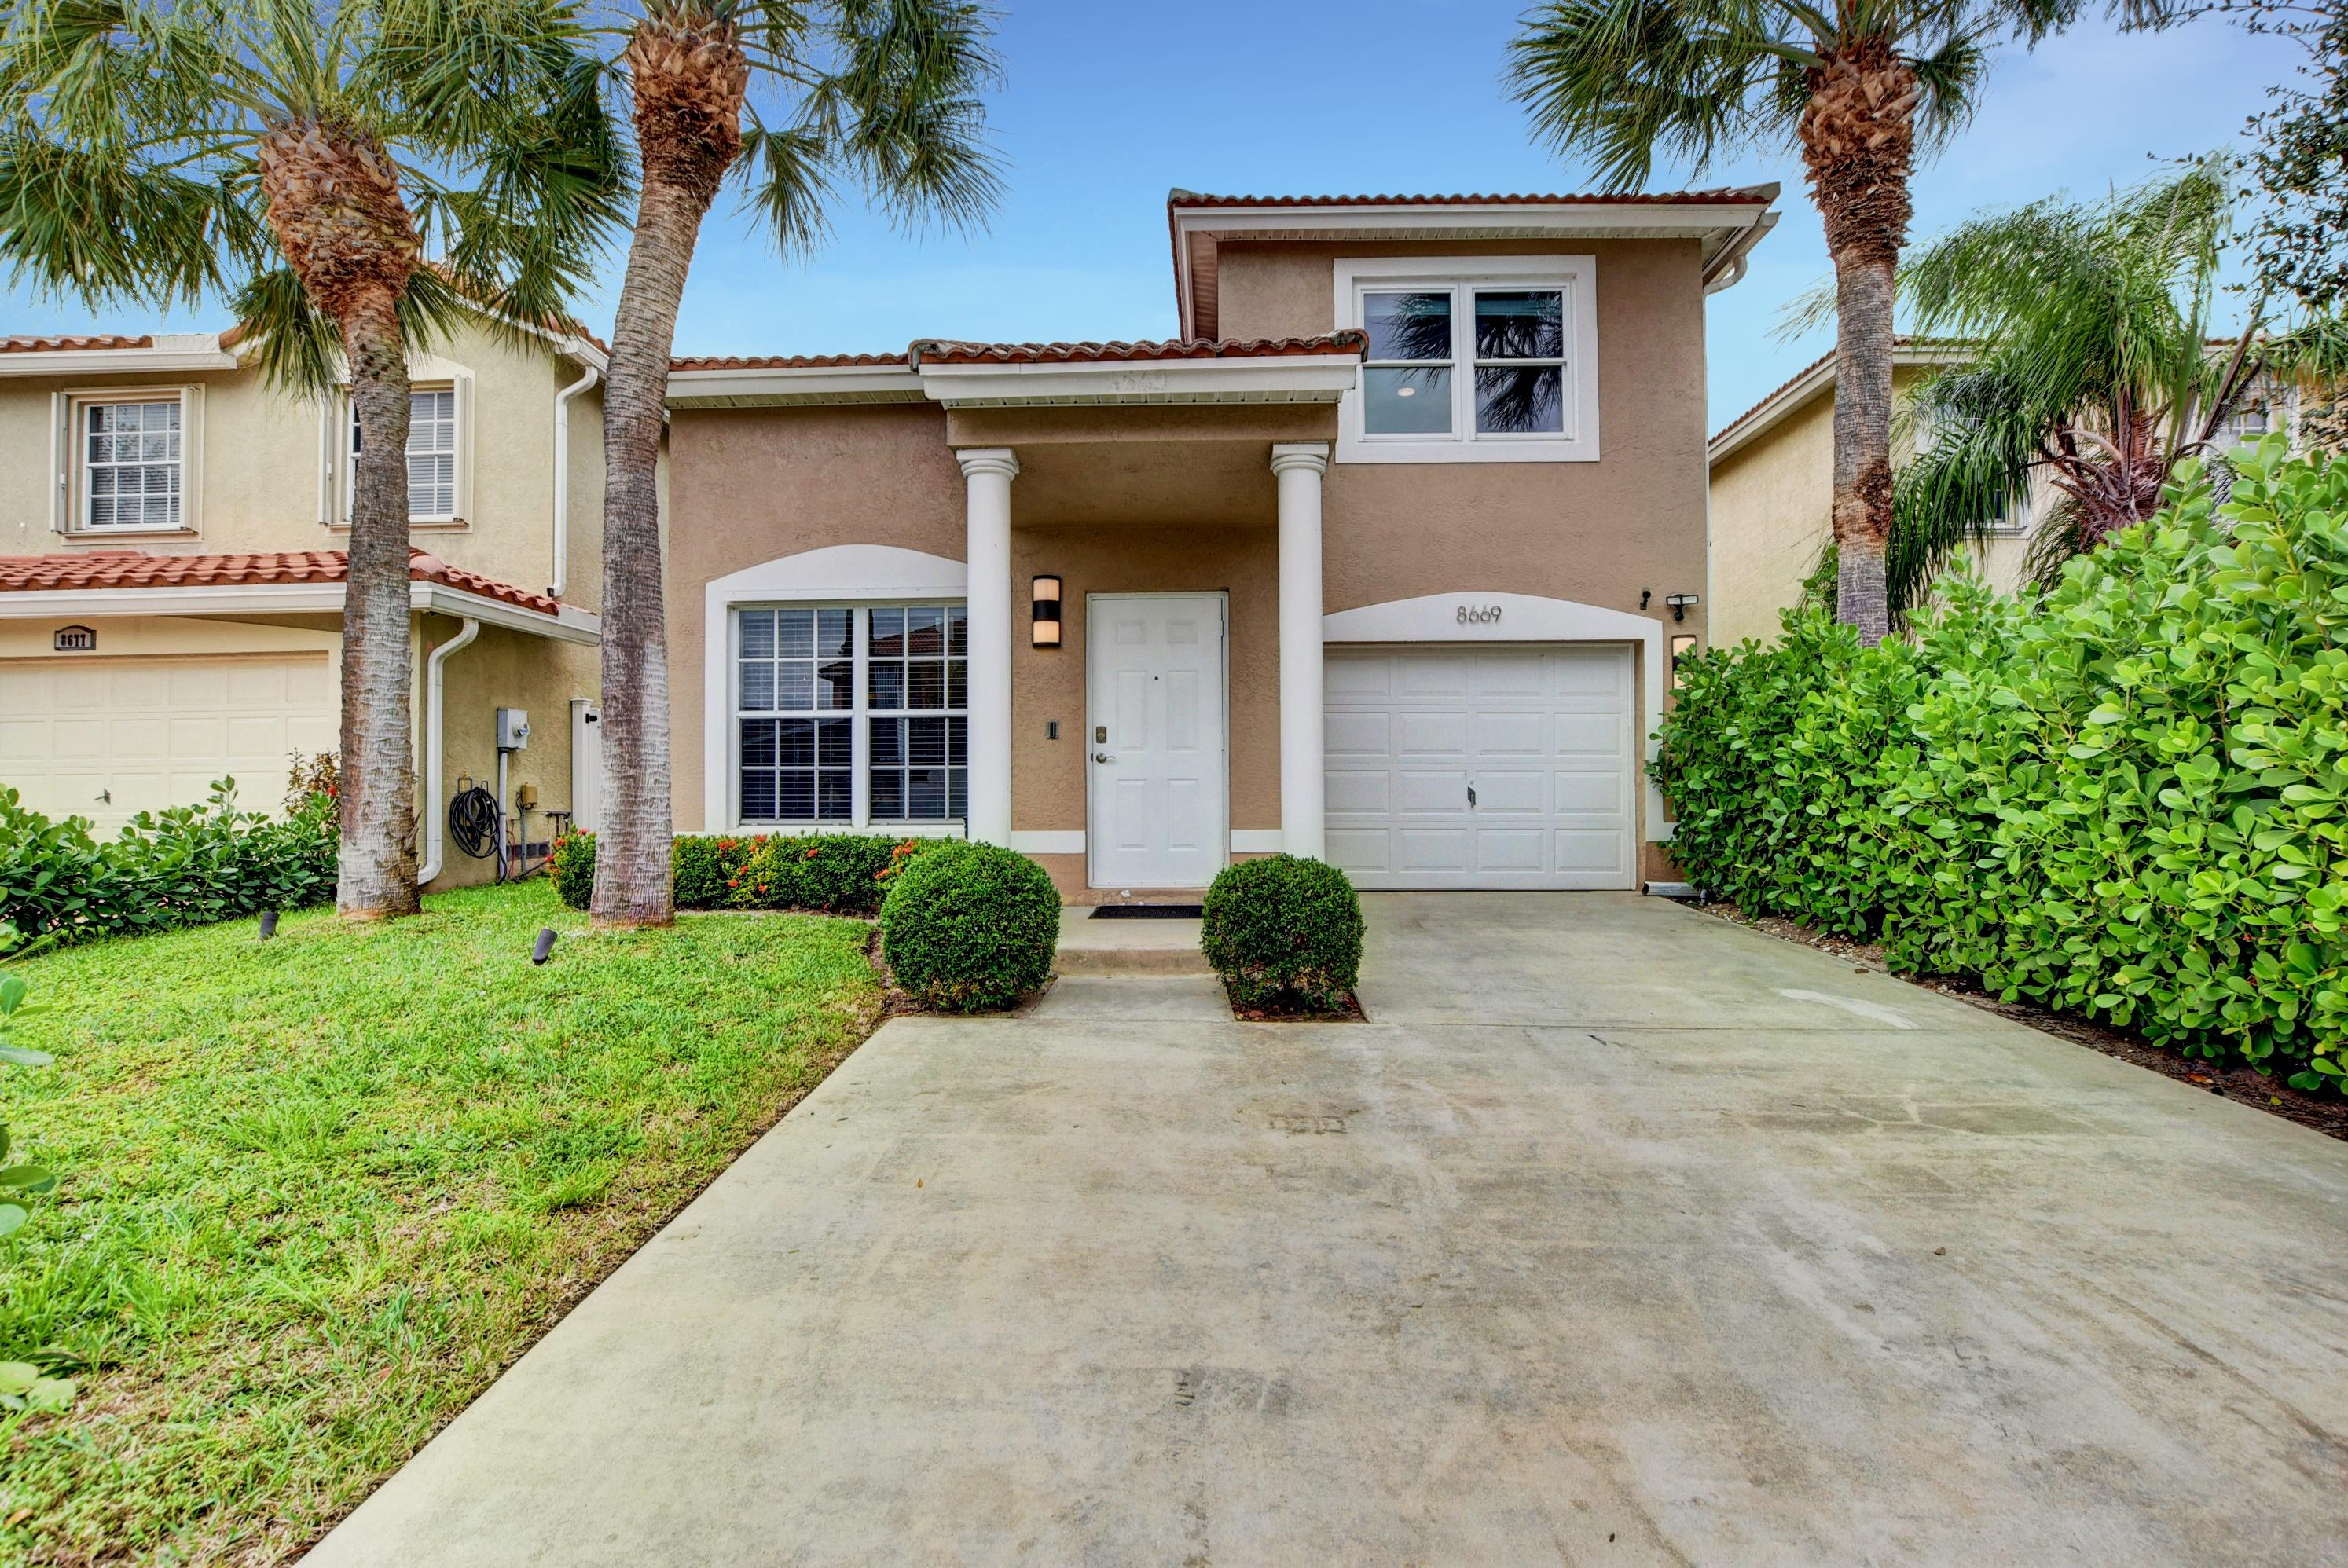 Perfection is no mistake when it comes to this immaculate home! Low HOA, Full security system, including camera system that covers all exterior of home.  Smart sprinkler system (Rain Bird system) controlled by phone app. Lake view.